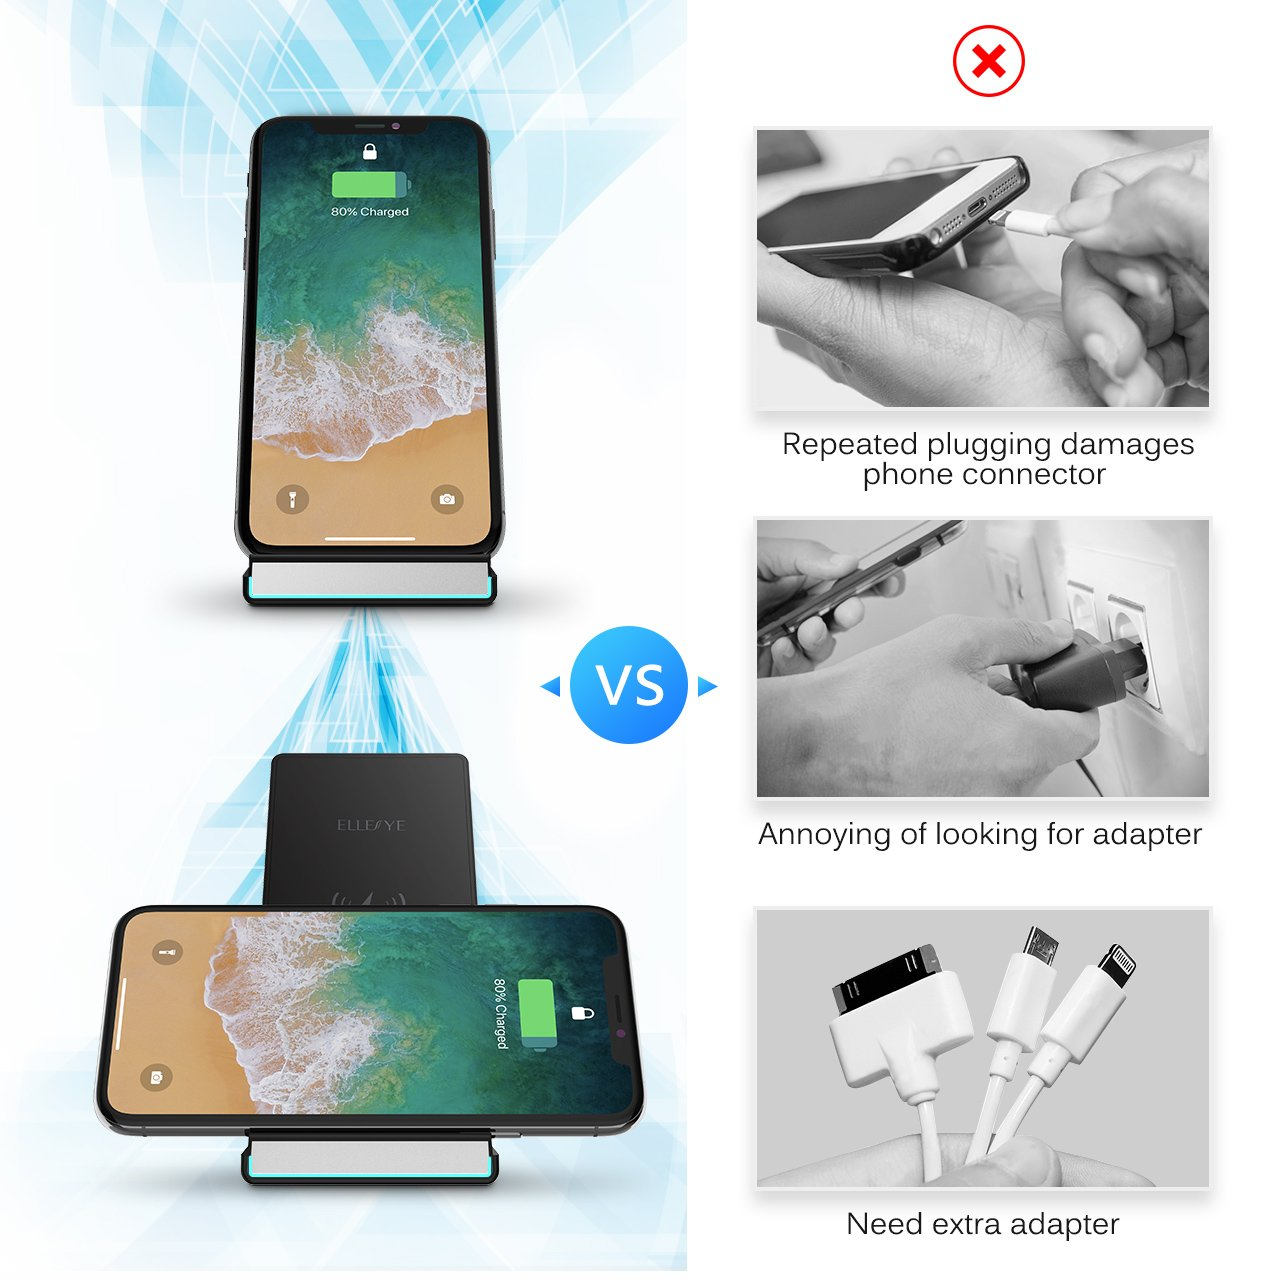 iPhone X Wireless Charger, ELLESYE 10W Fast Wireless Charger Charging Stand for Galaxy S9 S9 Plus Note 8 S8 S8 Plus S7 S7 Edge Note 5 S6 Edge, 5W Standard Charge for iPhone X/8/8 Plus (No AC Adapter) by ELLESYE (Image #5)